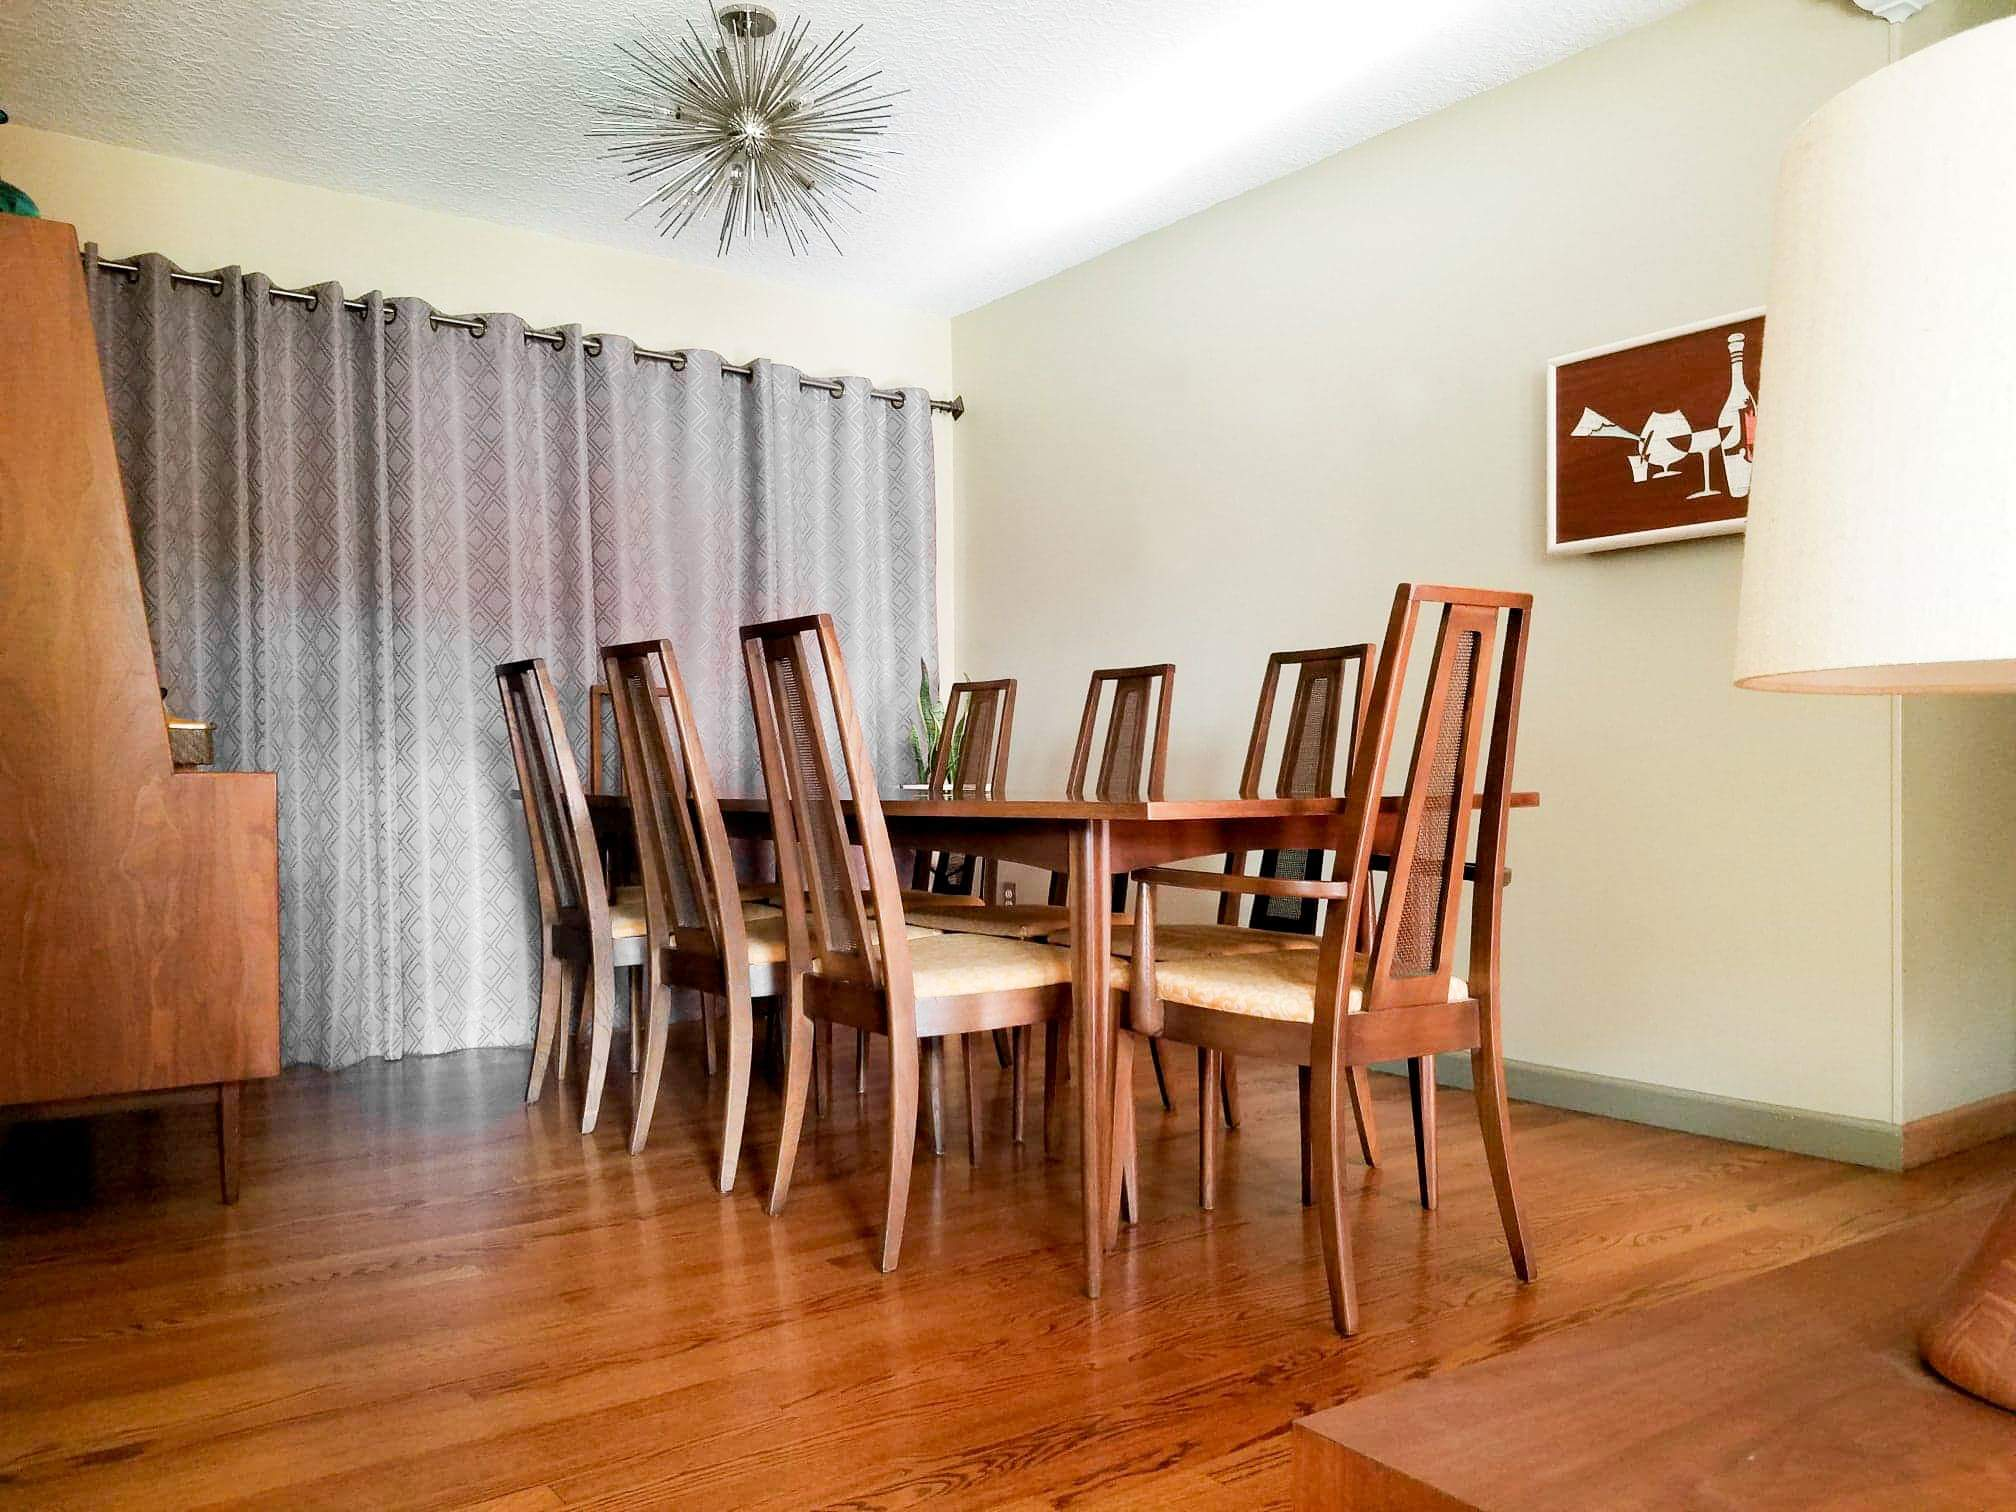 Broyhill Emphasis Series Mid Century Dining Table and Chairs_4